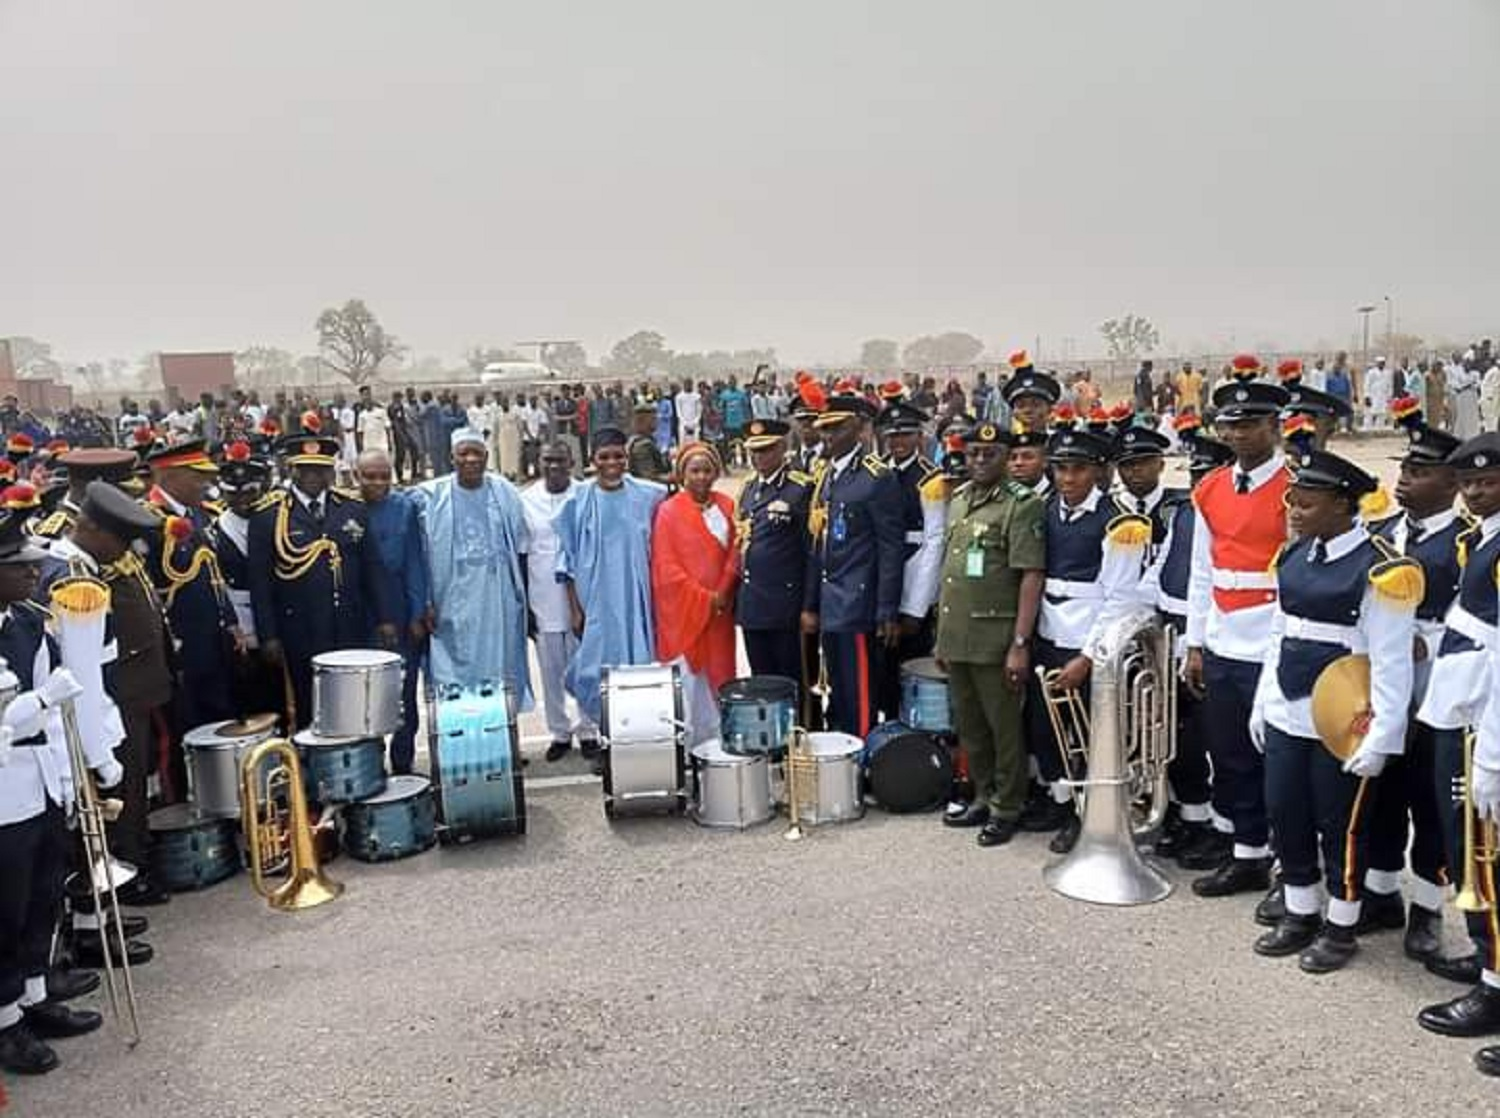 FG Commissions 2,200 Fire Service Cadet Officers, 150 drivers, 6 firefighting trucks